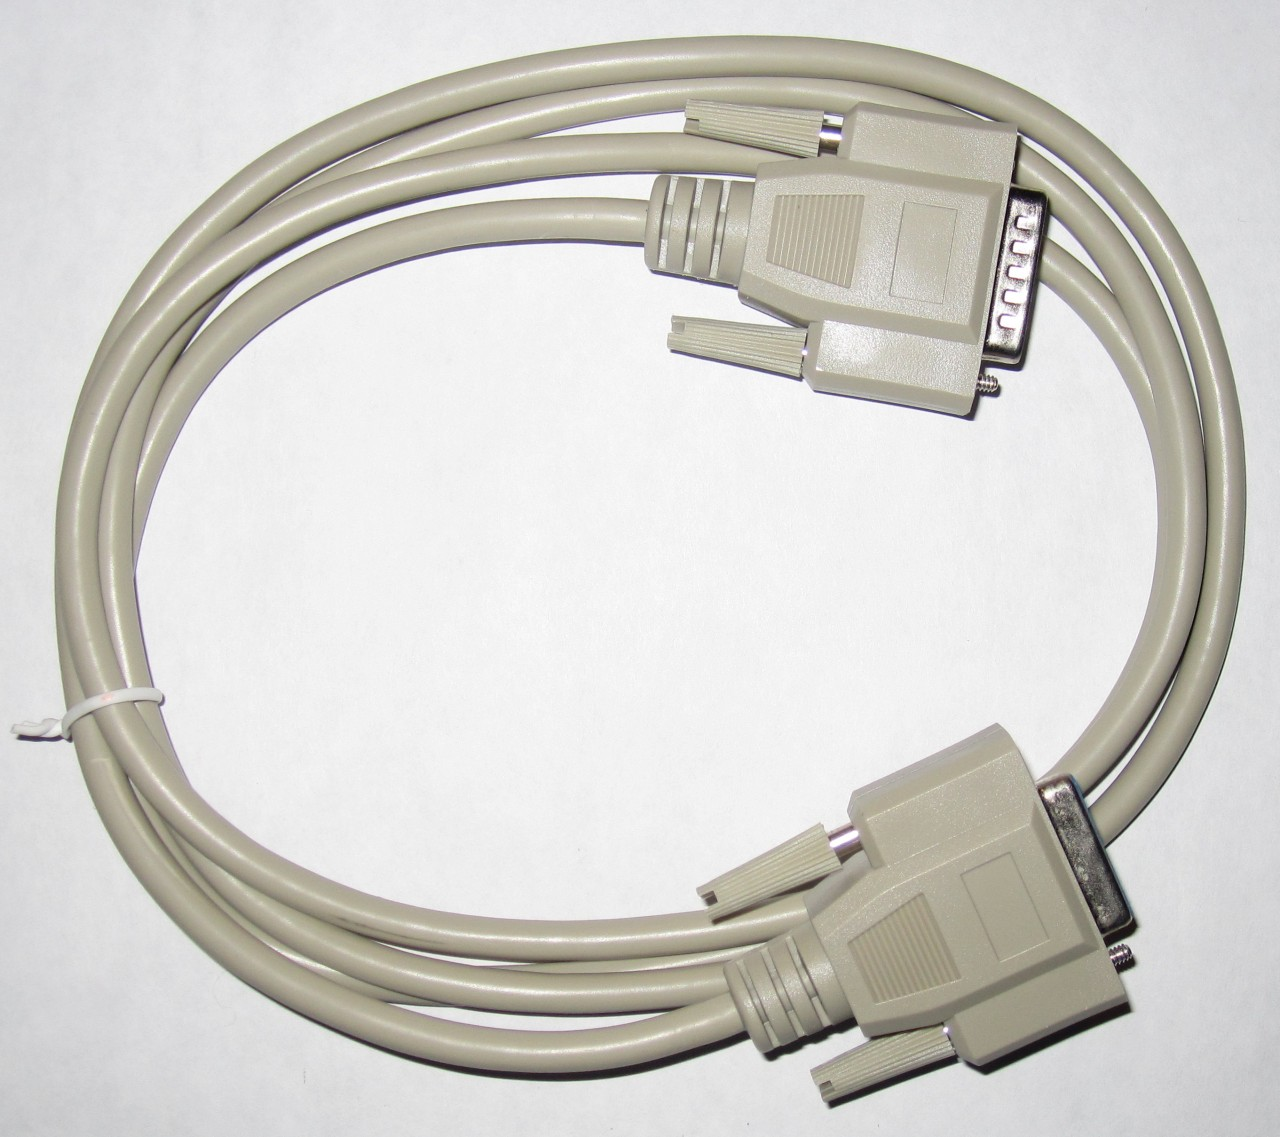 DB-15 Parallel Cable